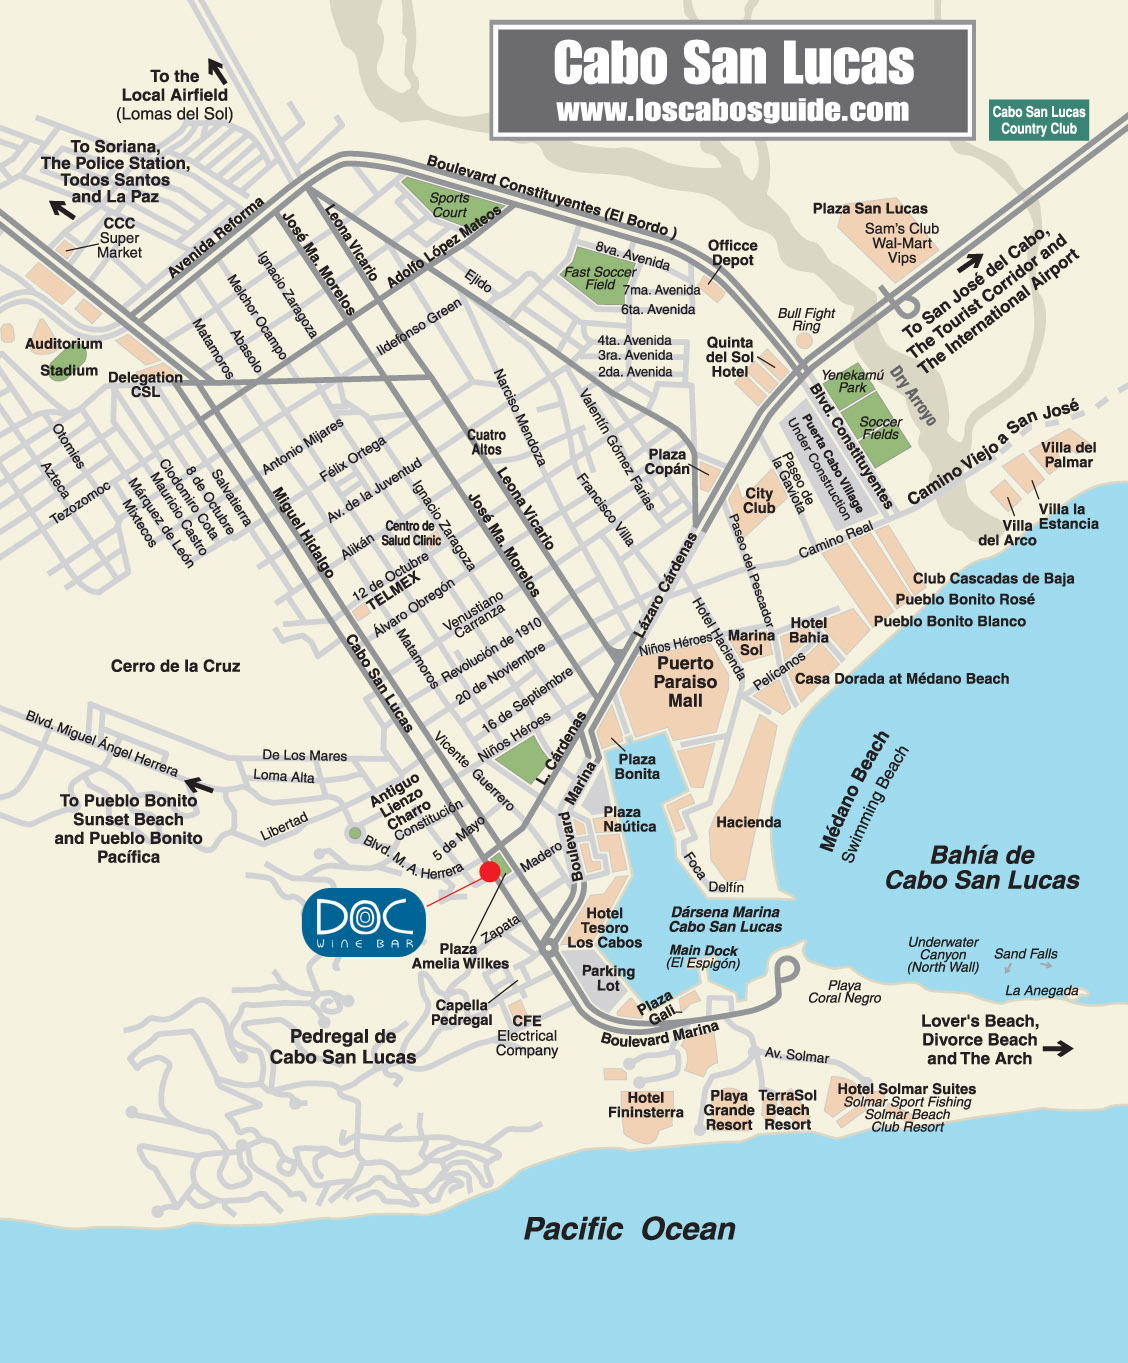 Doc Wine Bar and Italian Restaurant Map Cabo San Lucas Los